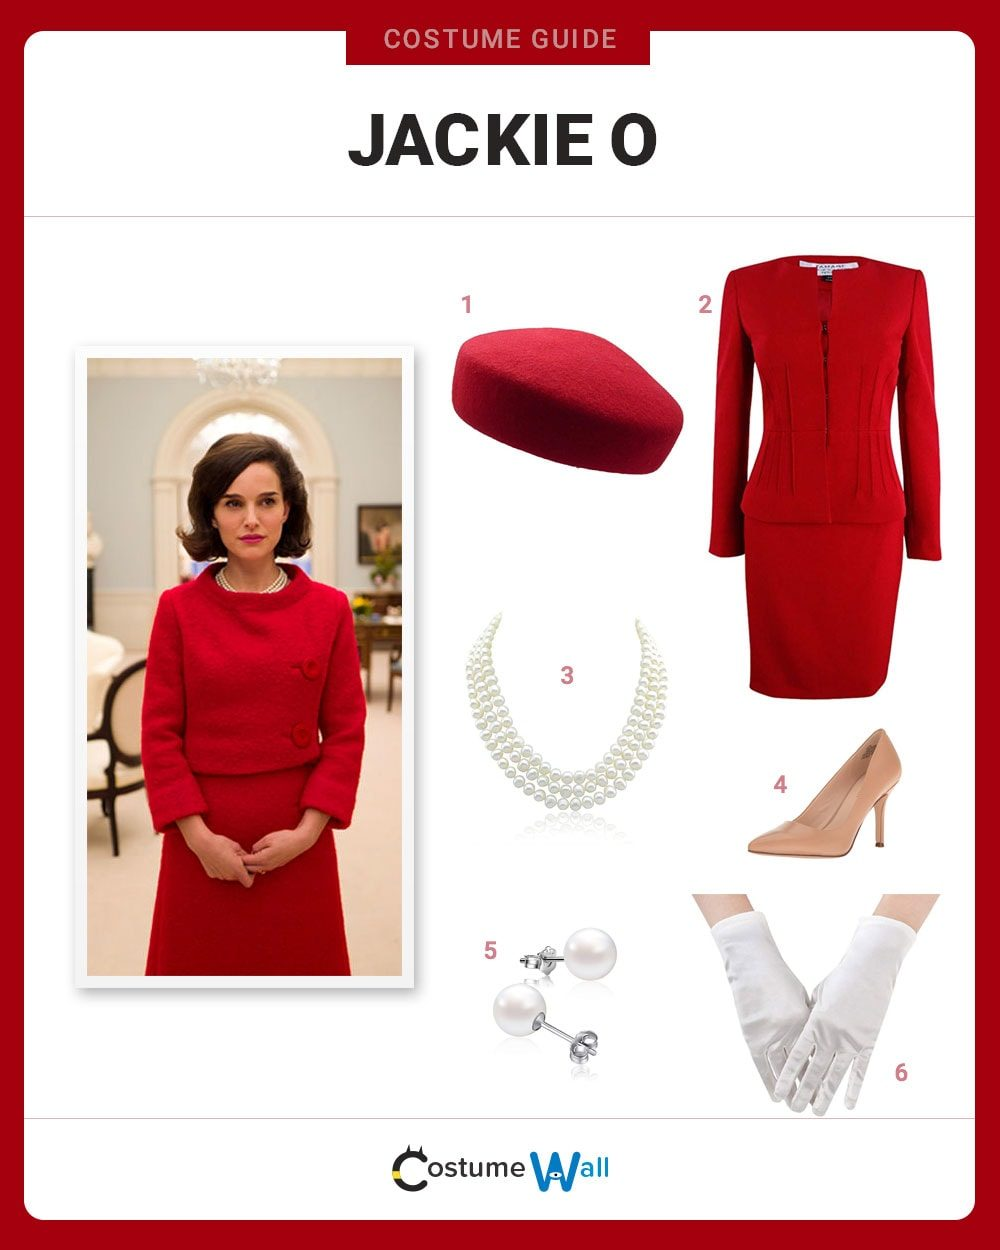 Jackie O Costume Guide